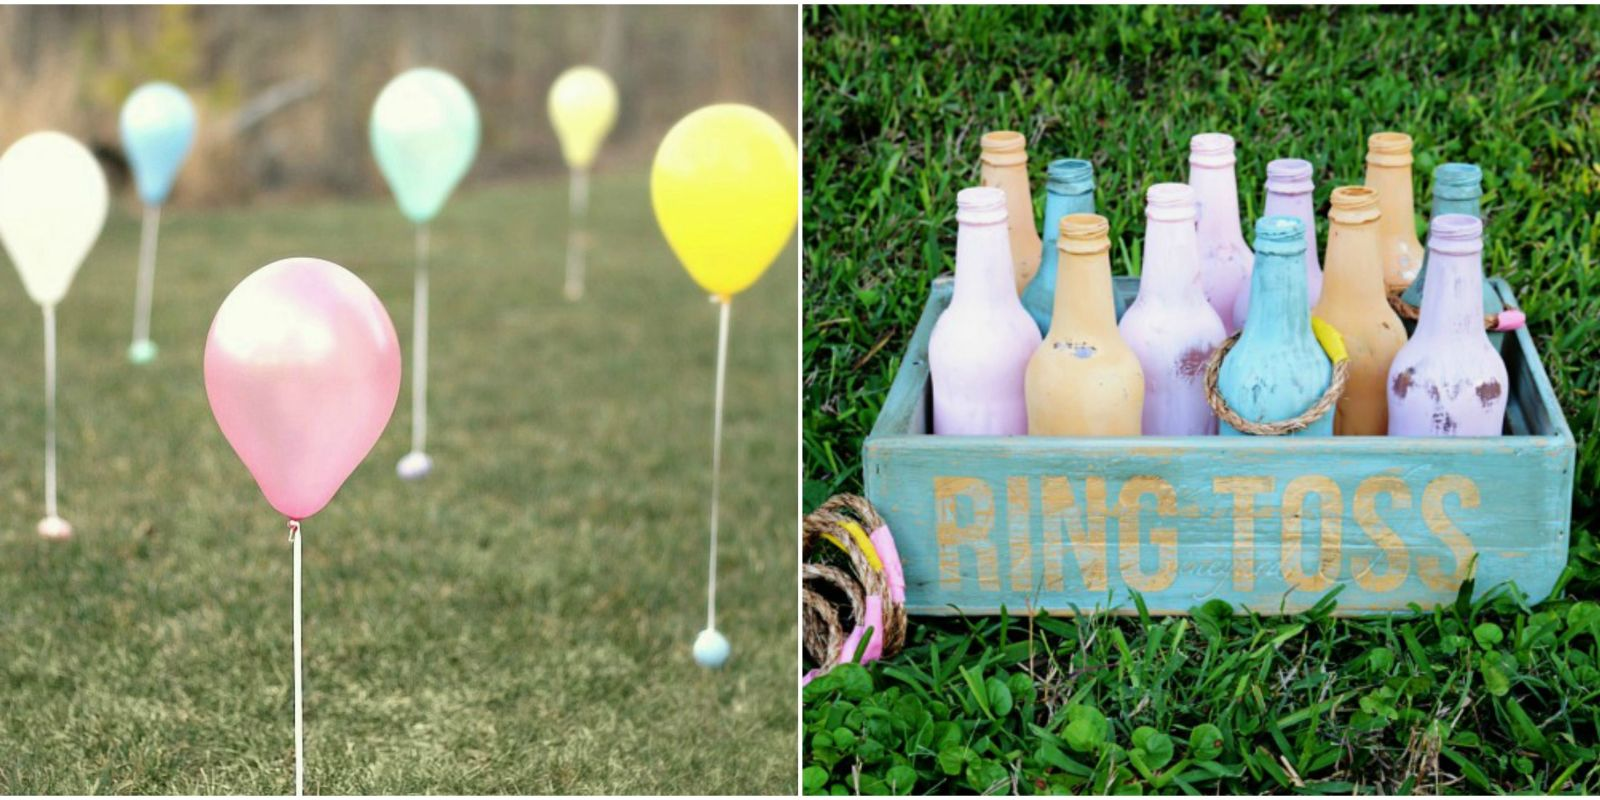 10 Fun Easter Games for Kids - Easy Ideas for Easter Party Games